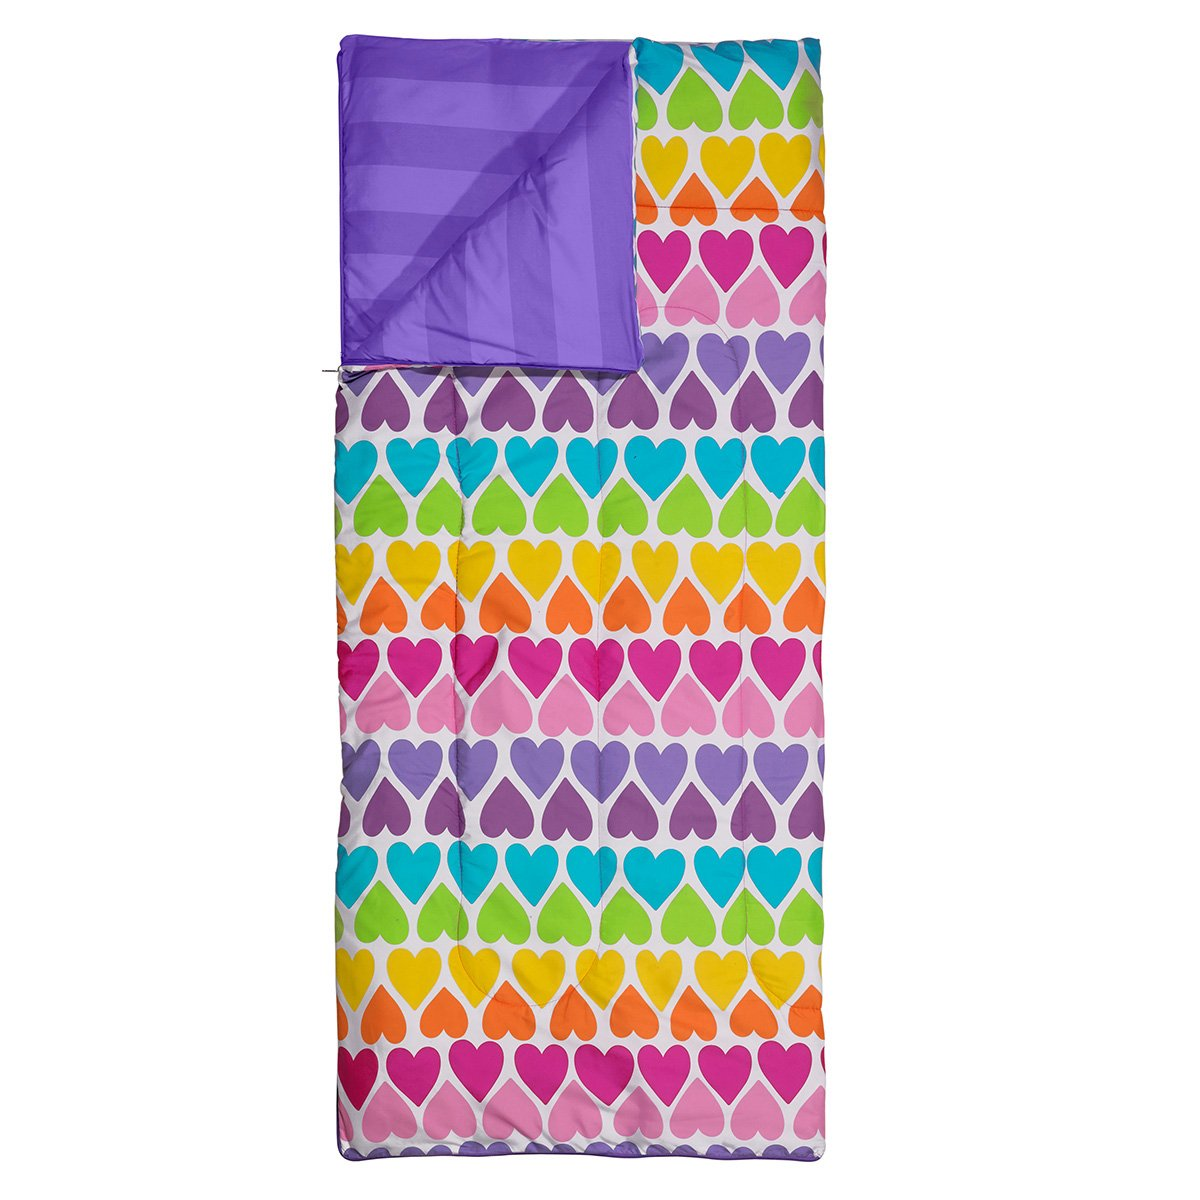 3C4G Rainbow Hearts Reversible Sleeping Bag